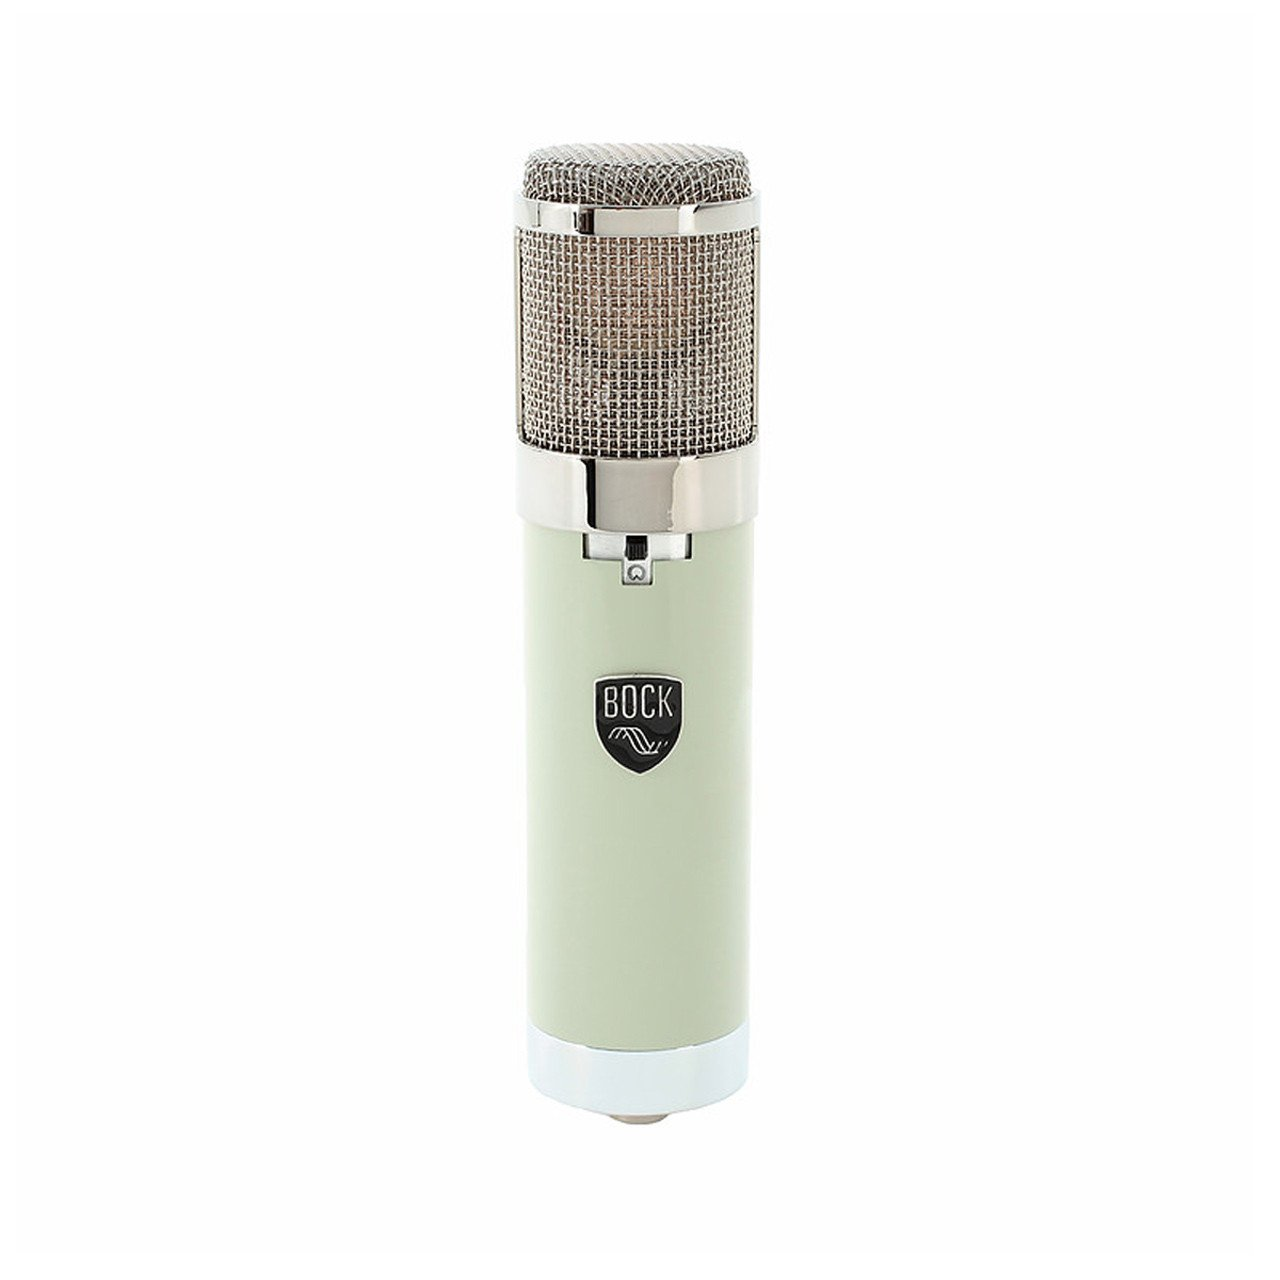 Tube Microphones - Bock Audio 251 Large-Diaphragm Multi-Pattern Tube Condenser Microphone